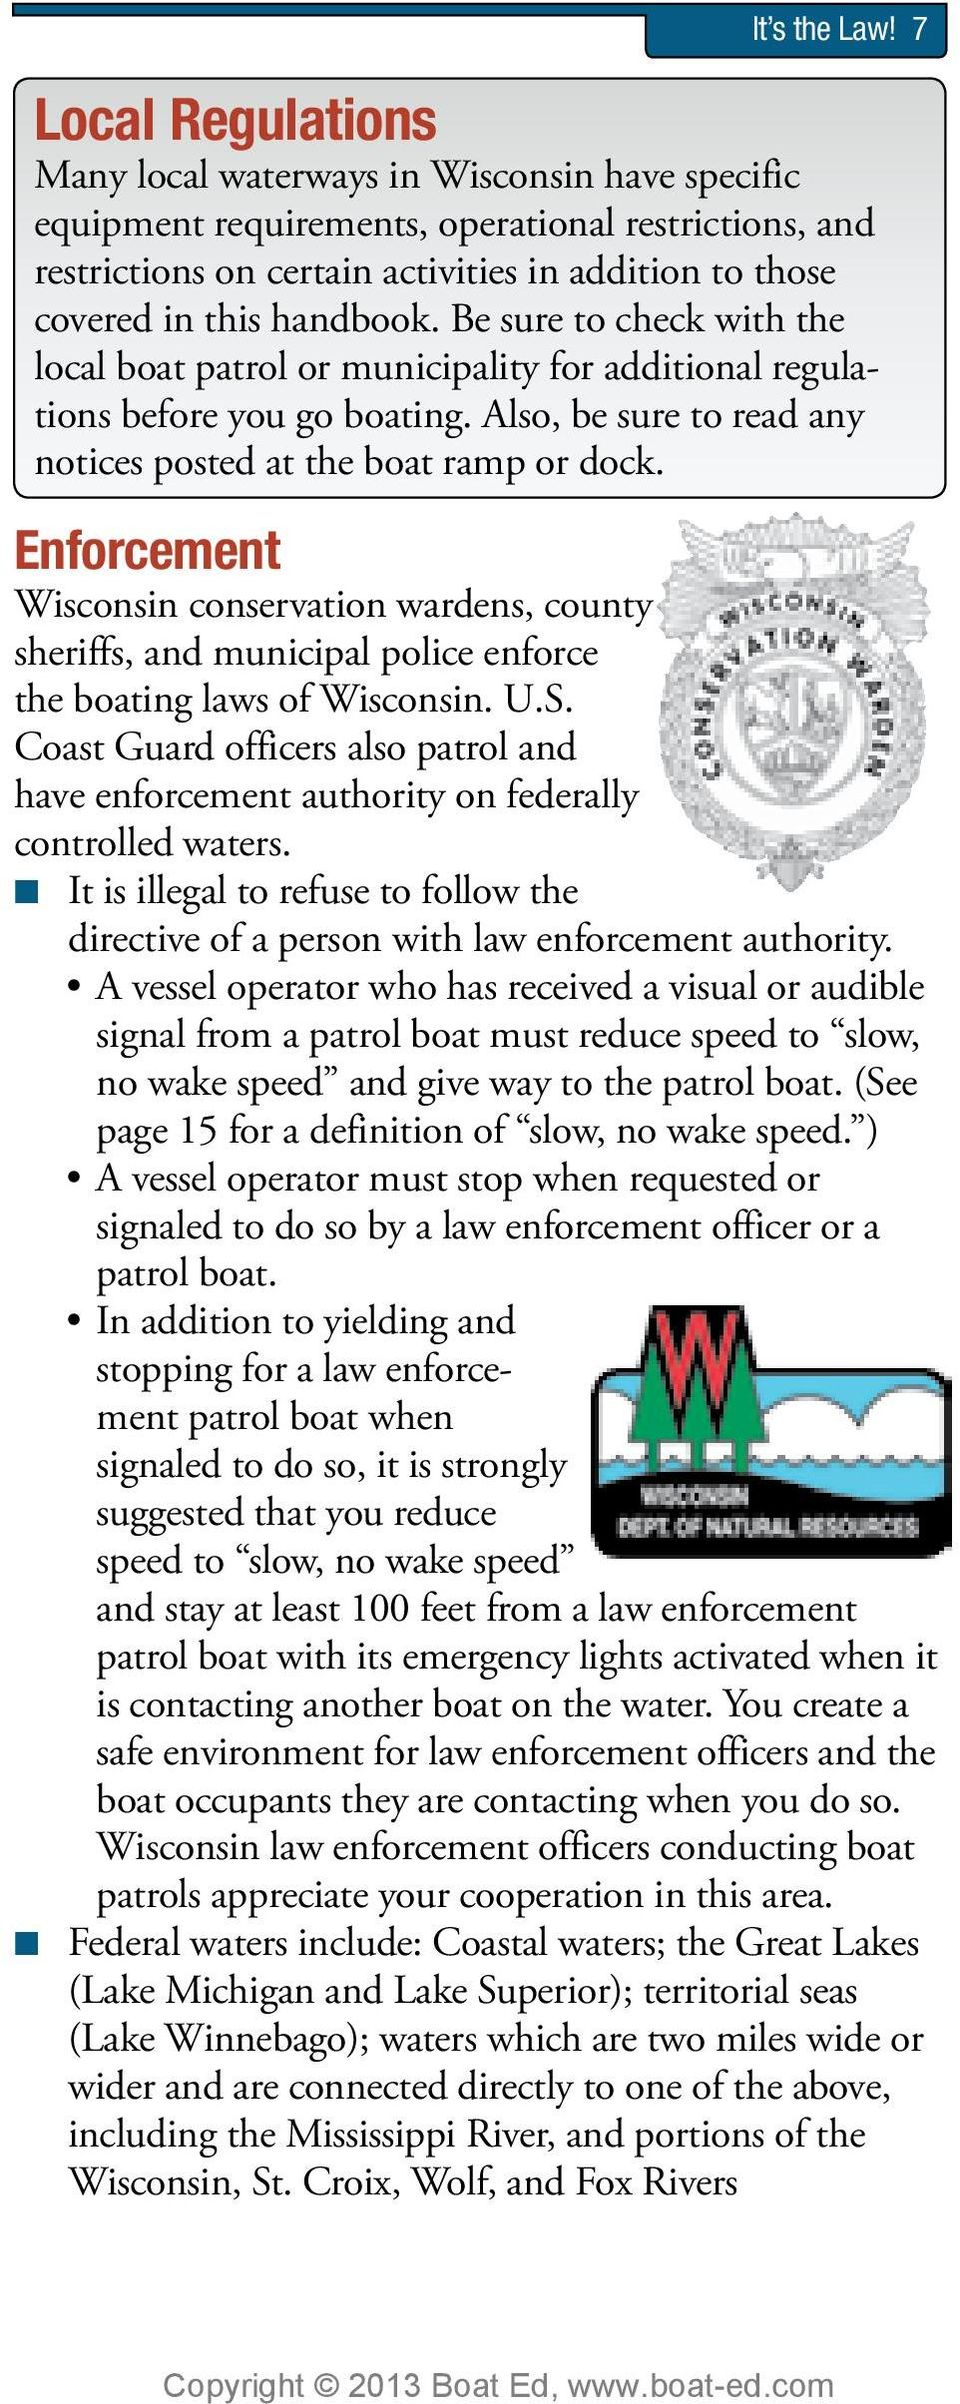 handbook. Be sure to check with the local boat patrol or municipality for additional regulations before you go boating. Also, be sure to read any notices posted at the boat ramp or dock.